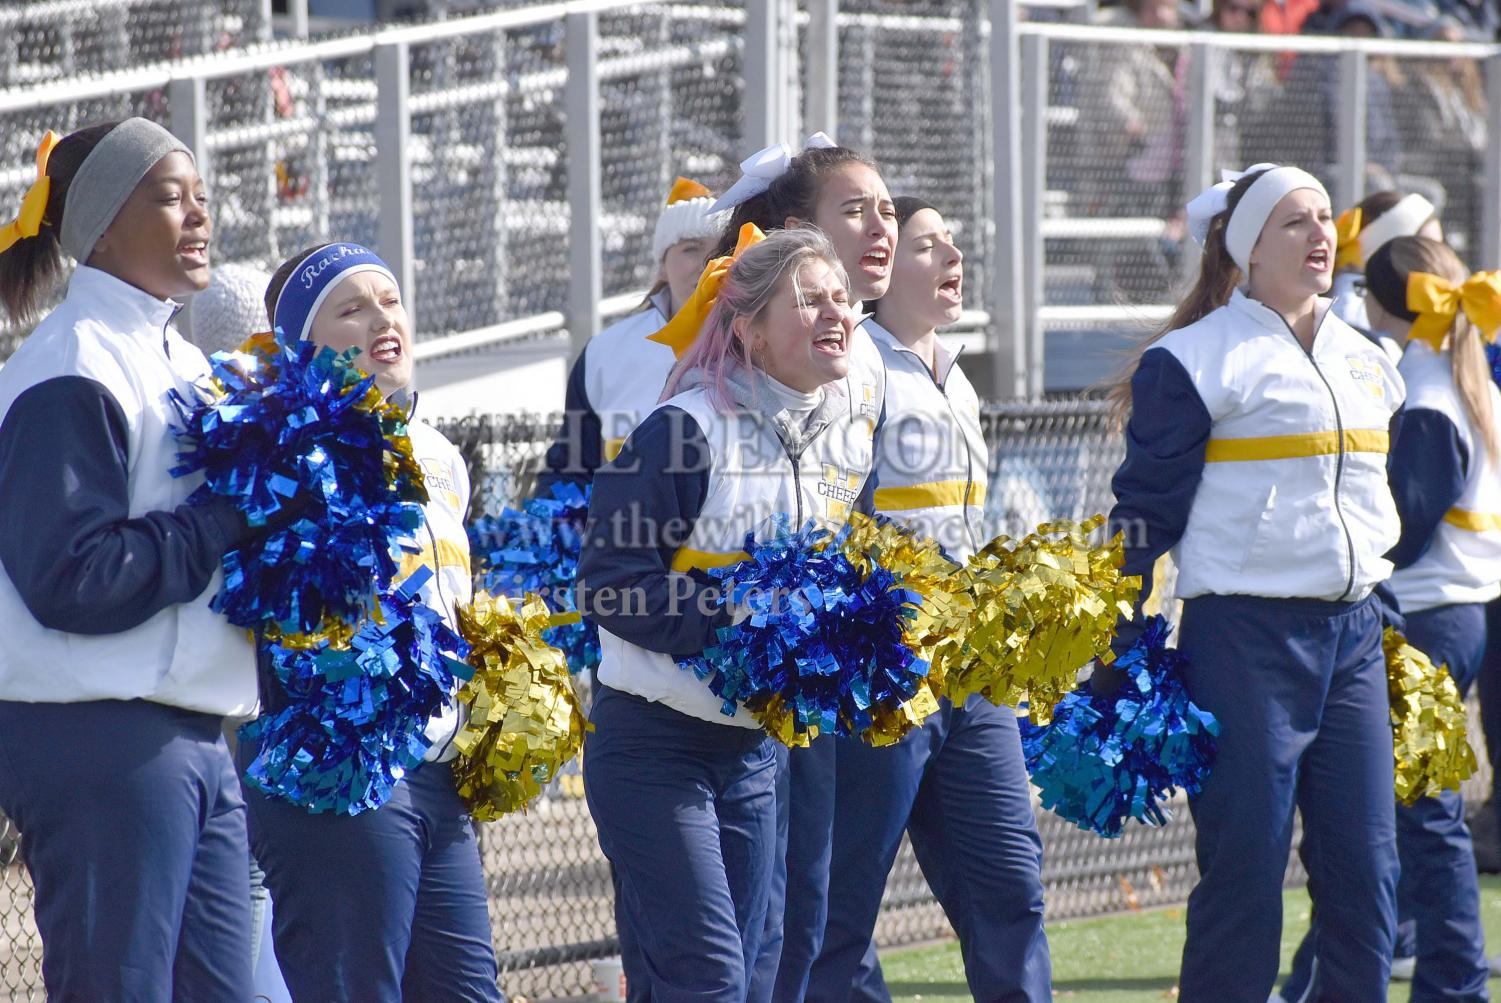 The Wilkes cheerleading team energizes the football team and fans during Wilkes' game against Stevenson on Saturday.